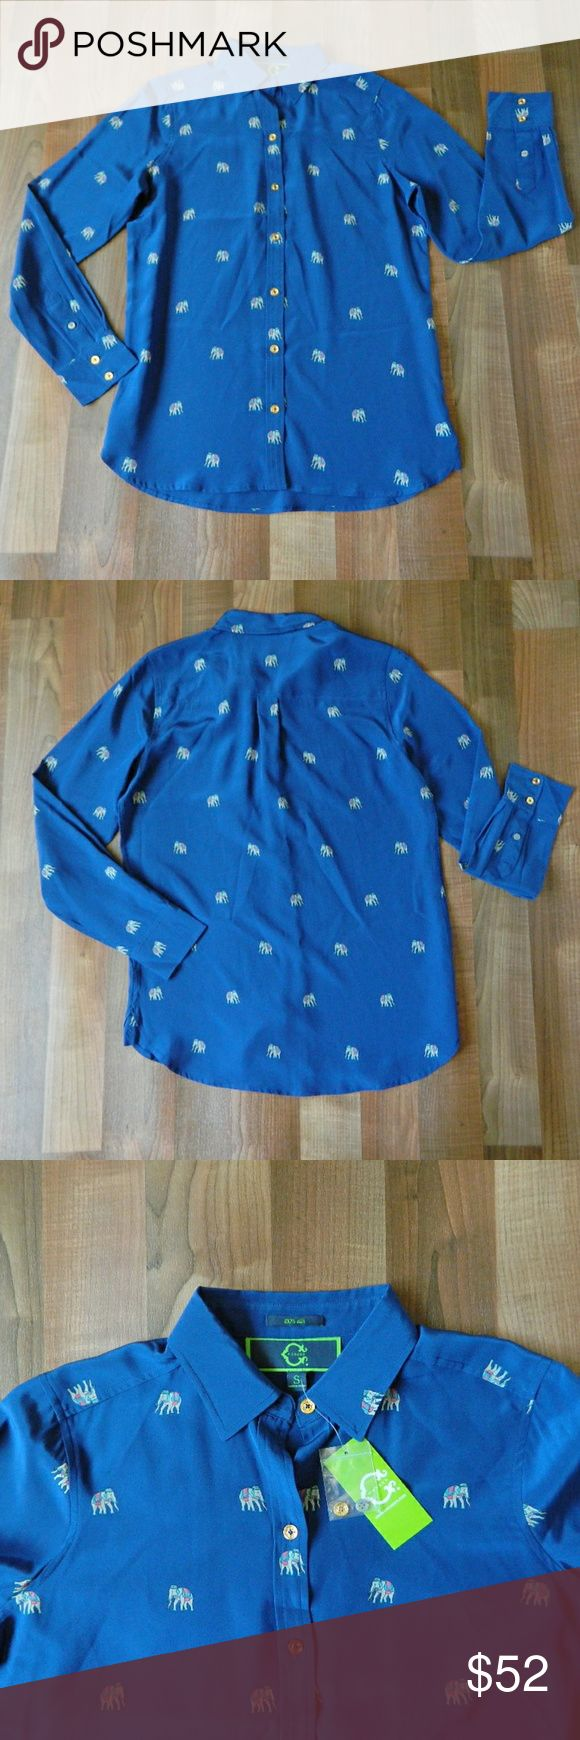 """NWT C. Wonder Silk Blue Elephant Print Blouse Brand new playful long sleeve silk blouse with elephant print by QVC brand C. Wonder. Size small. Made of 100% silk. Measurements: 14 5"""" shoulder to shoulder, 20"""" underarm to underarm, 28"""" long. Sold out on website. No trades, open to reasonable offers.   T00003 C. Wonder Tops Blouses"""